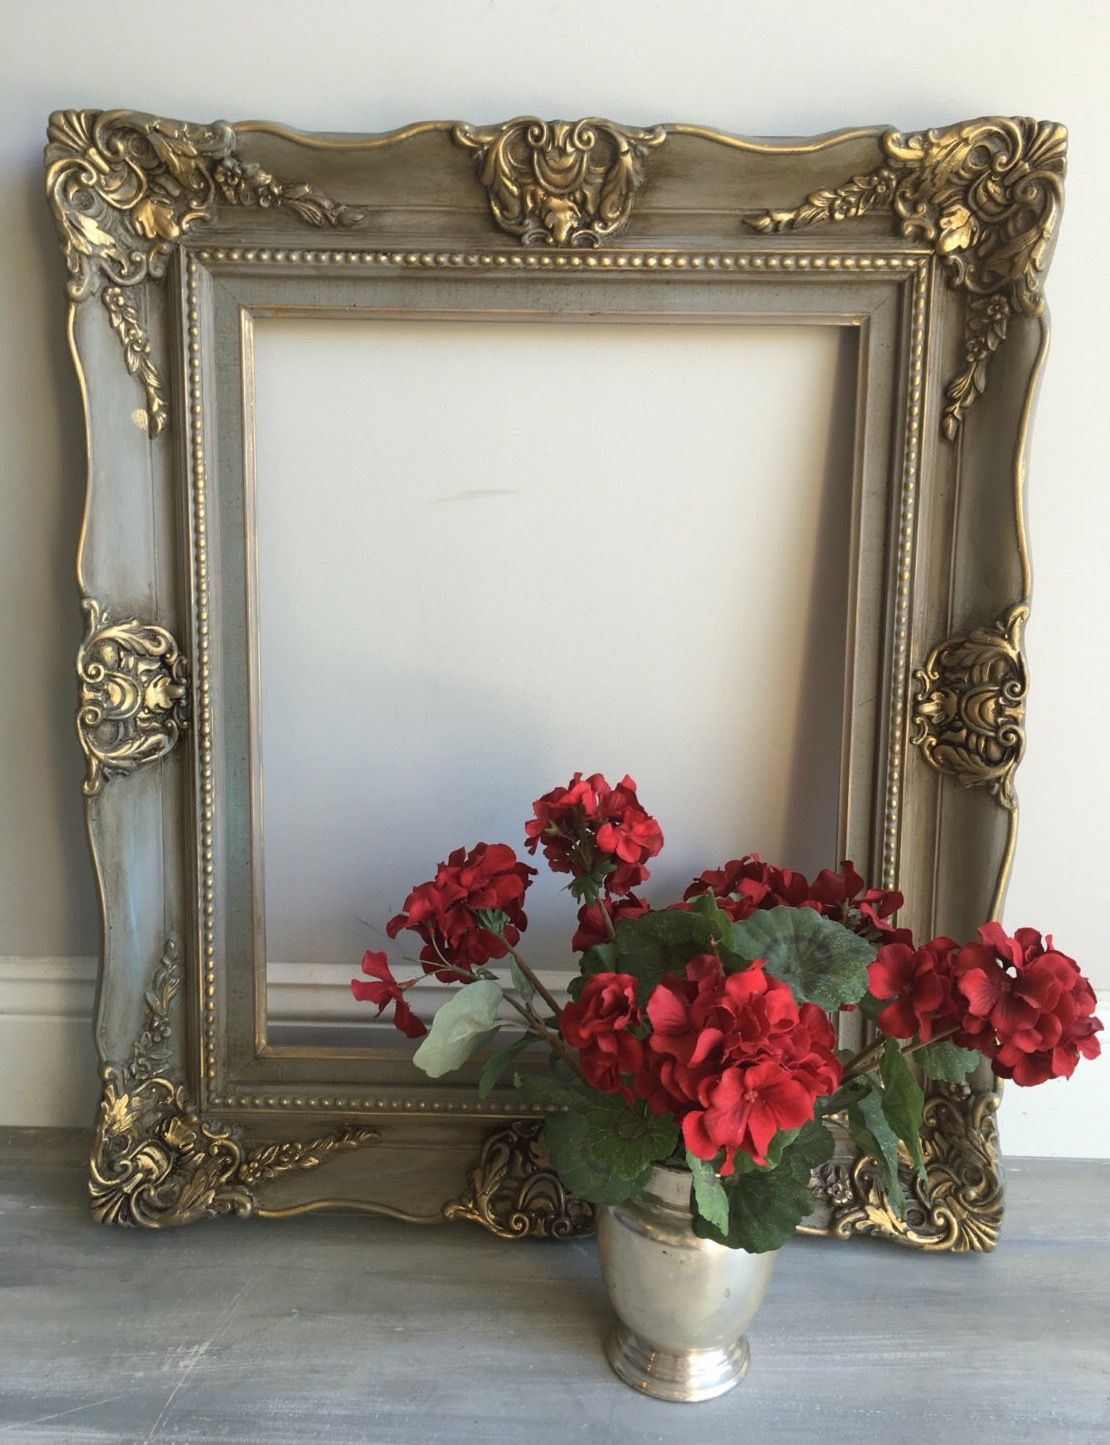 Ornate Vintage Wood Picture Frame Painted In Annie Sloan Chalk Paint French Linen Duck E Painted Picture Frames Ornate Picture Frames Painting Wood Furniture